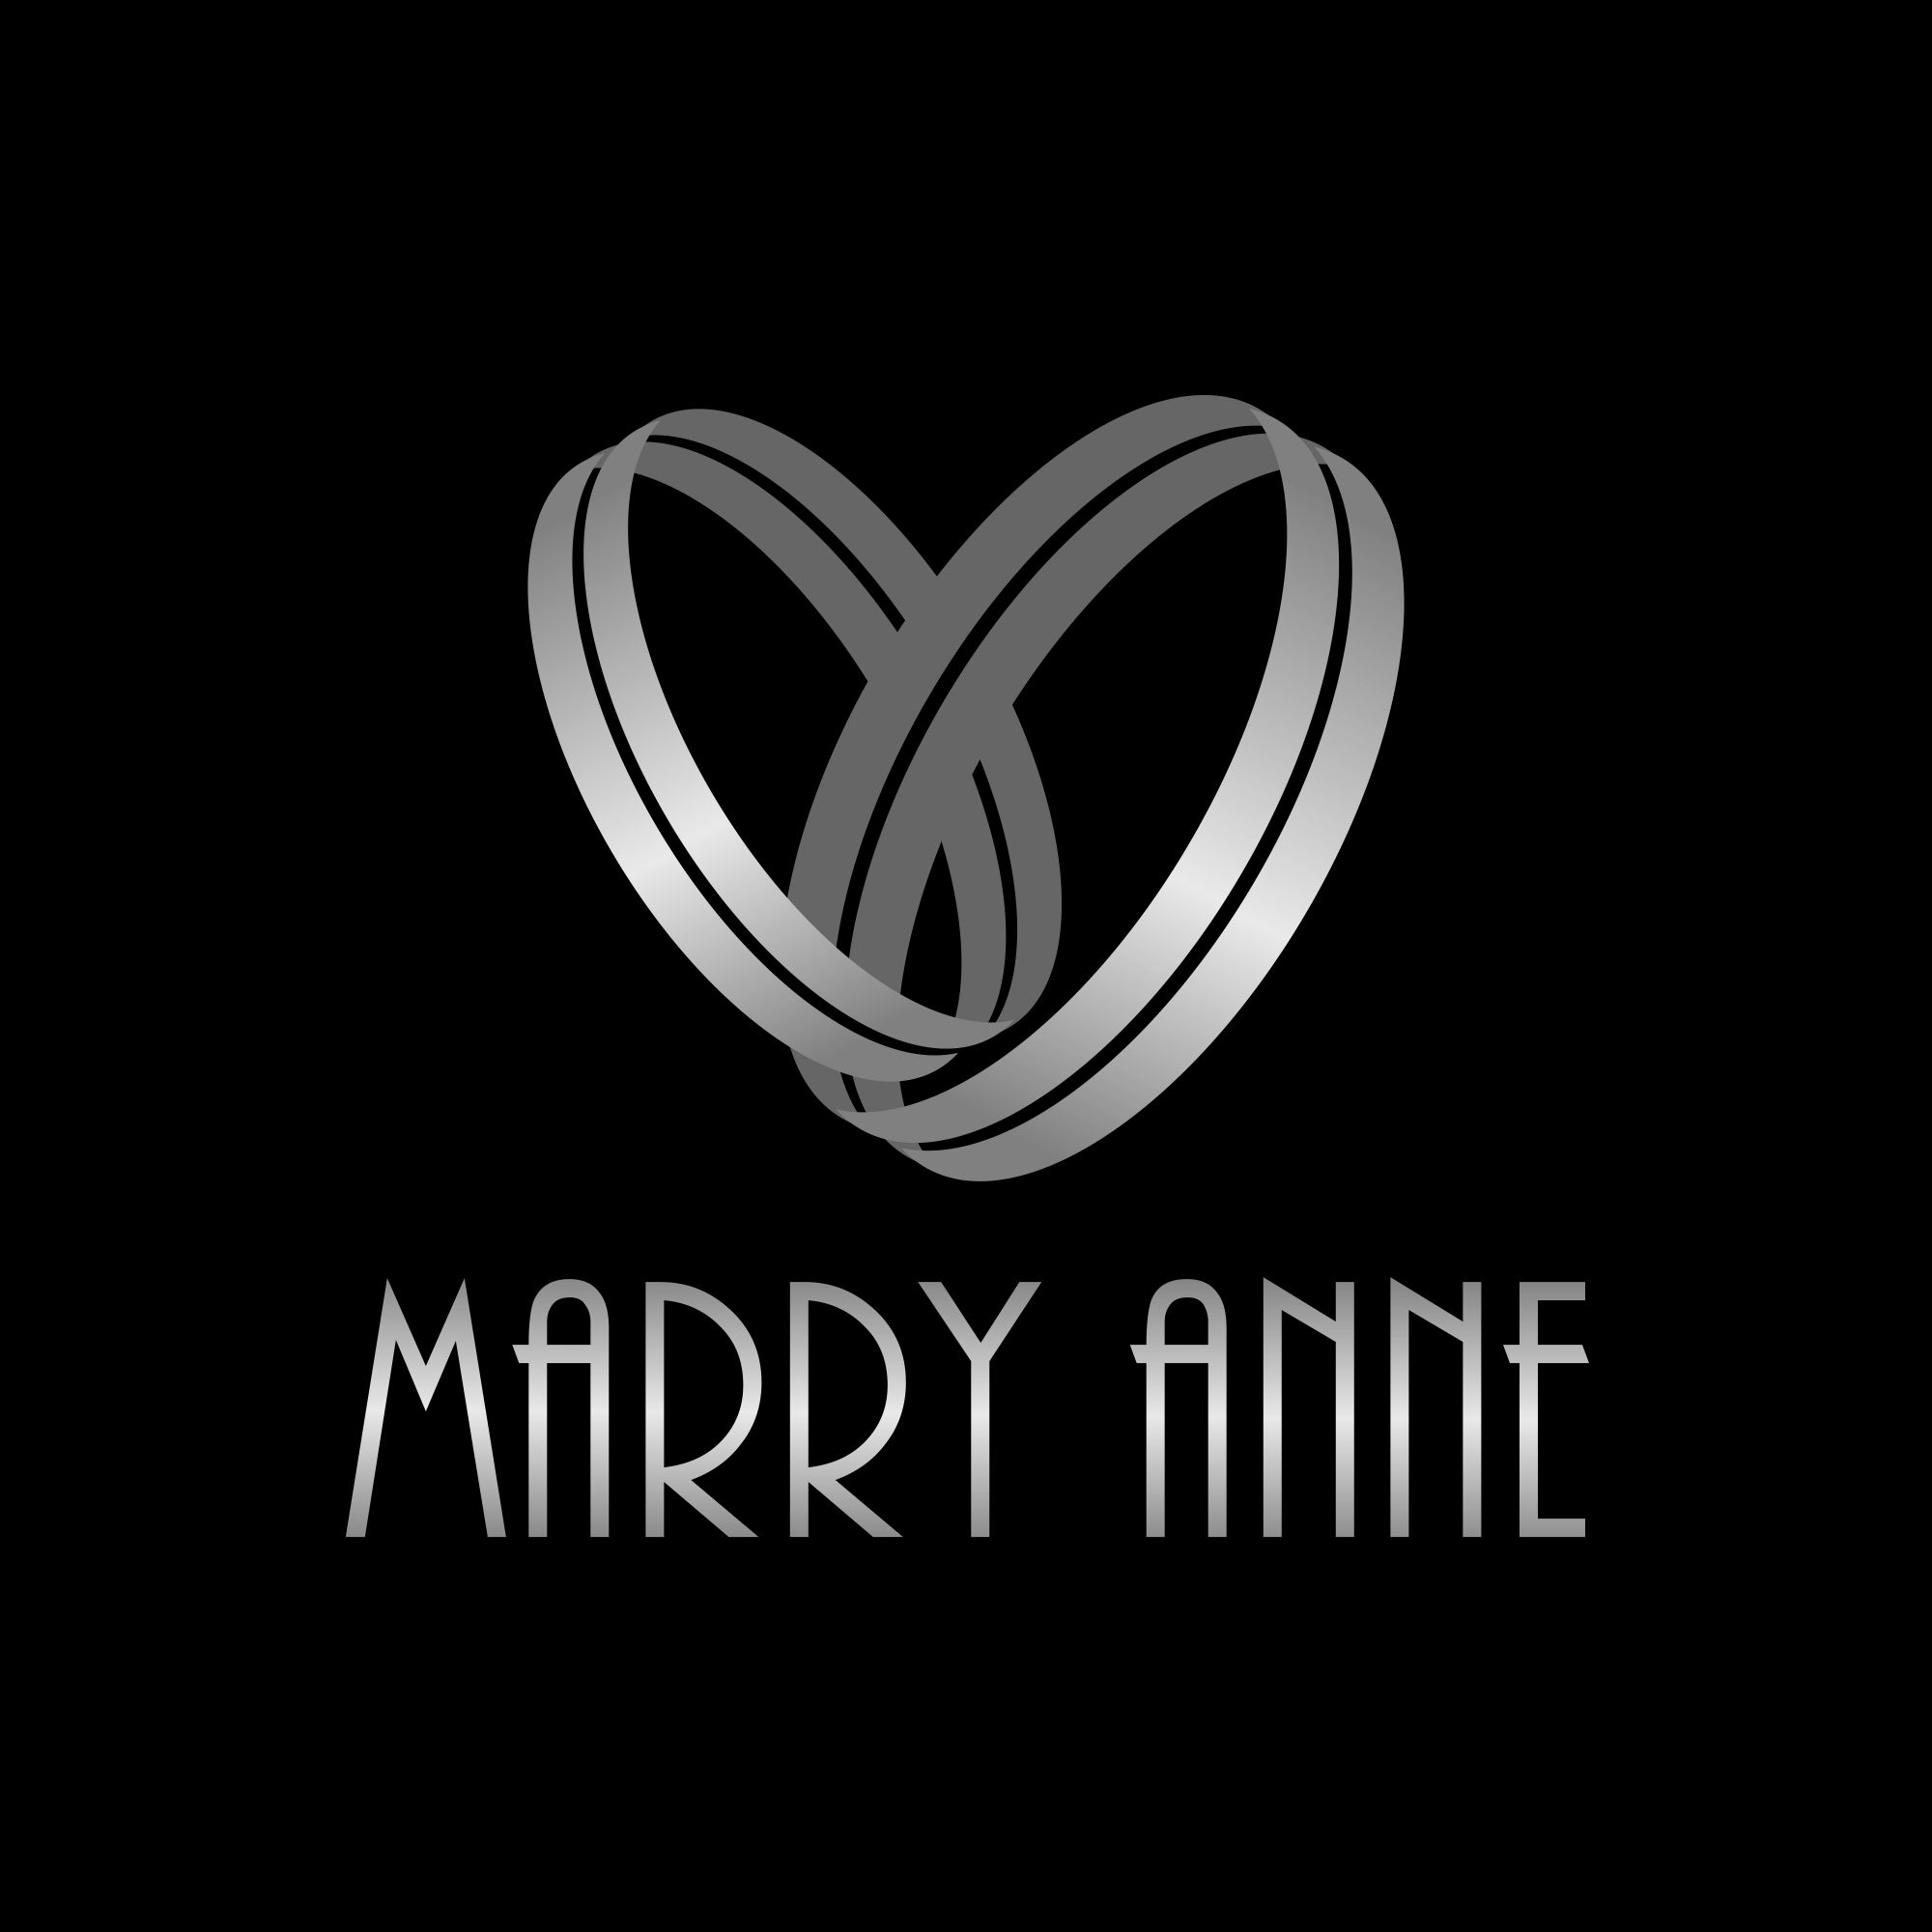 Marry Anne